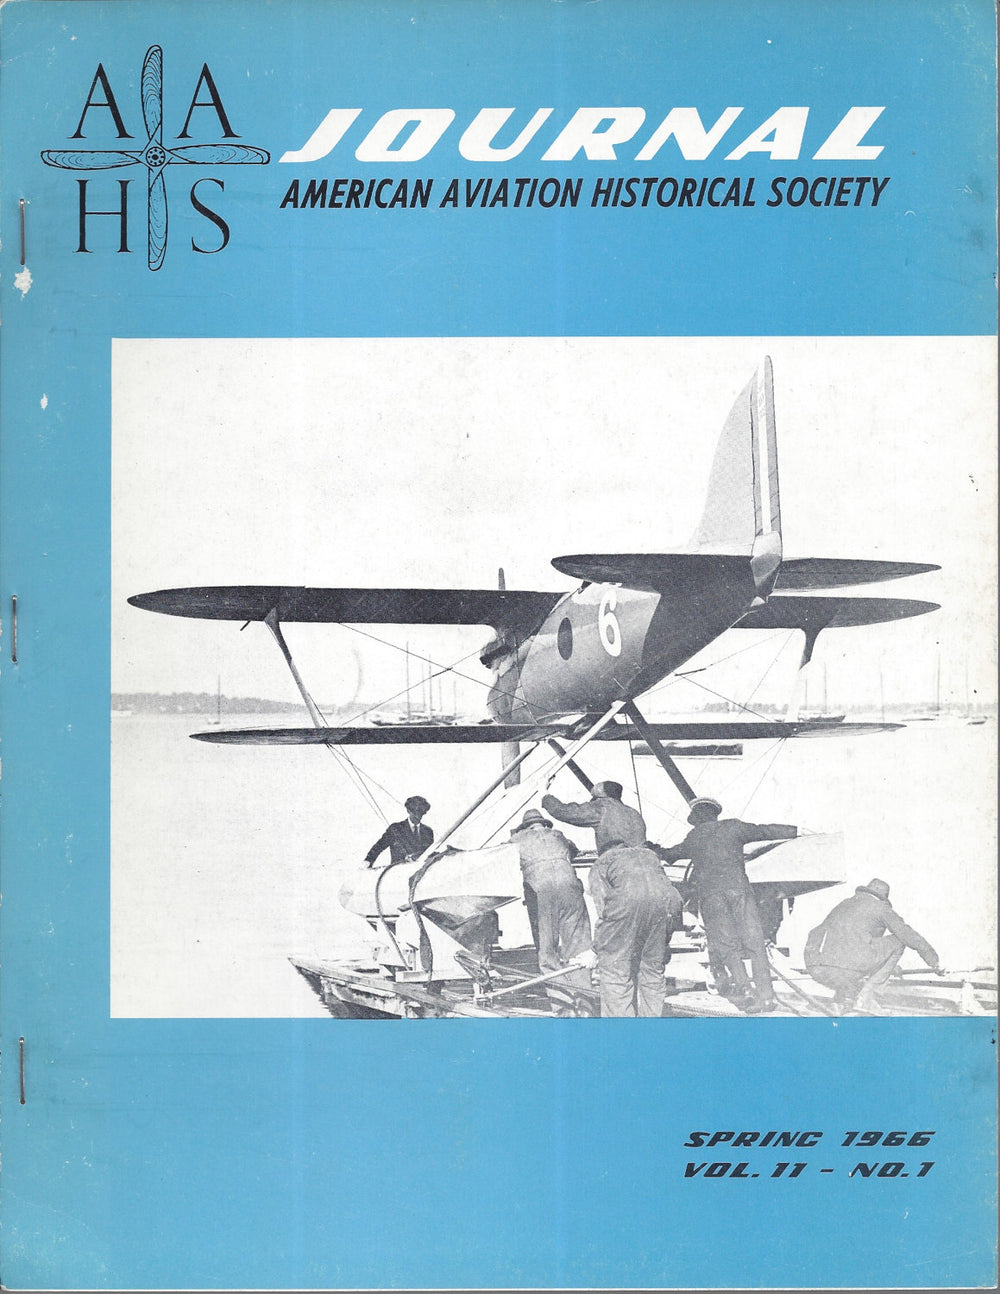 AAHS Journal Spring 1966 Volume 11-No. 1 Curtiss R2C